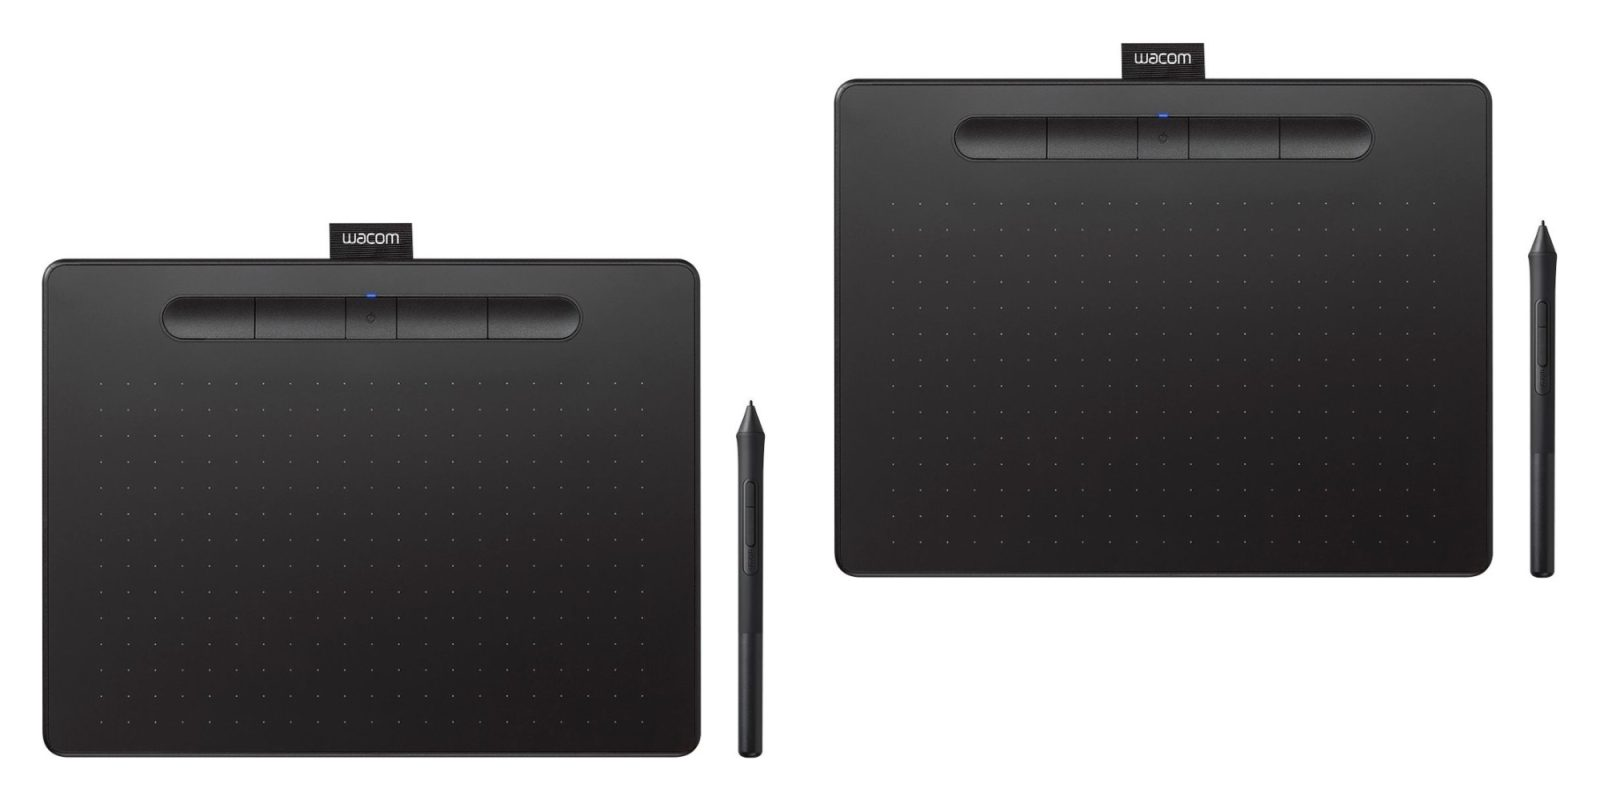 Add Wacom's Intuos Wireless Drawing Tablet to your Mac at $161 (Reg. $200)